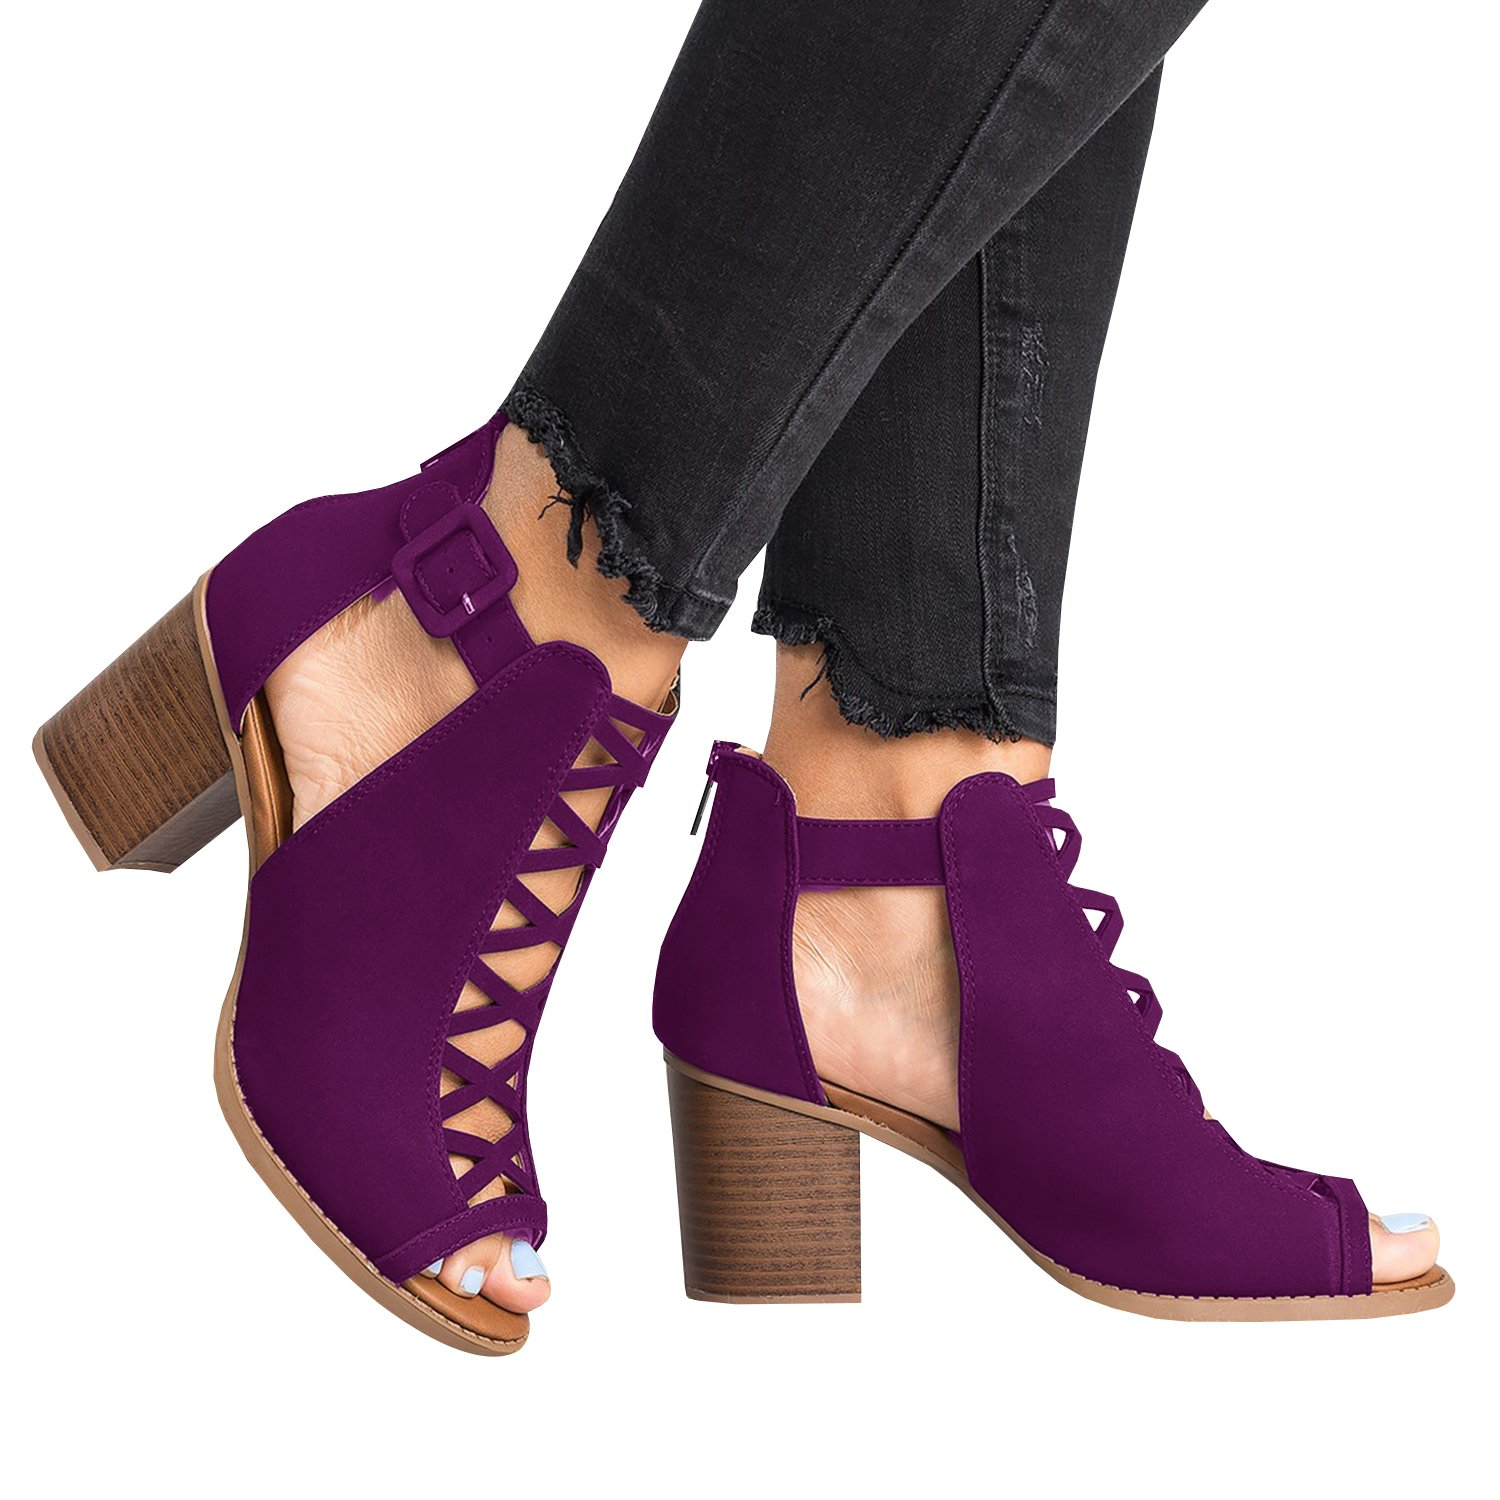 Womens Cutout Open Toe Bootie Sandals Stacked Chunky Block High Heel Ankle Boots